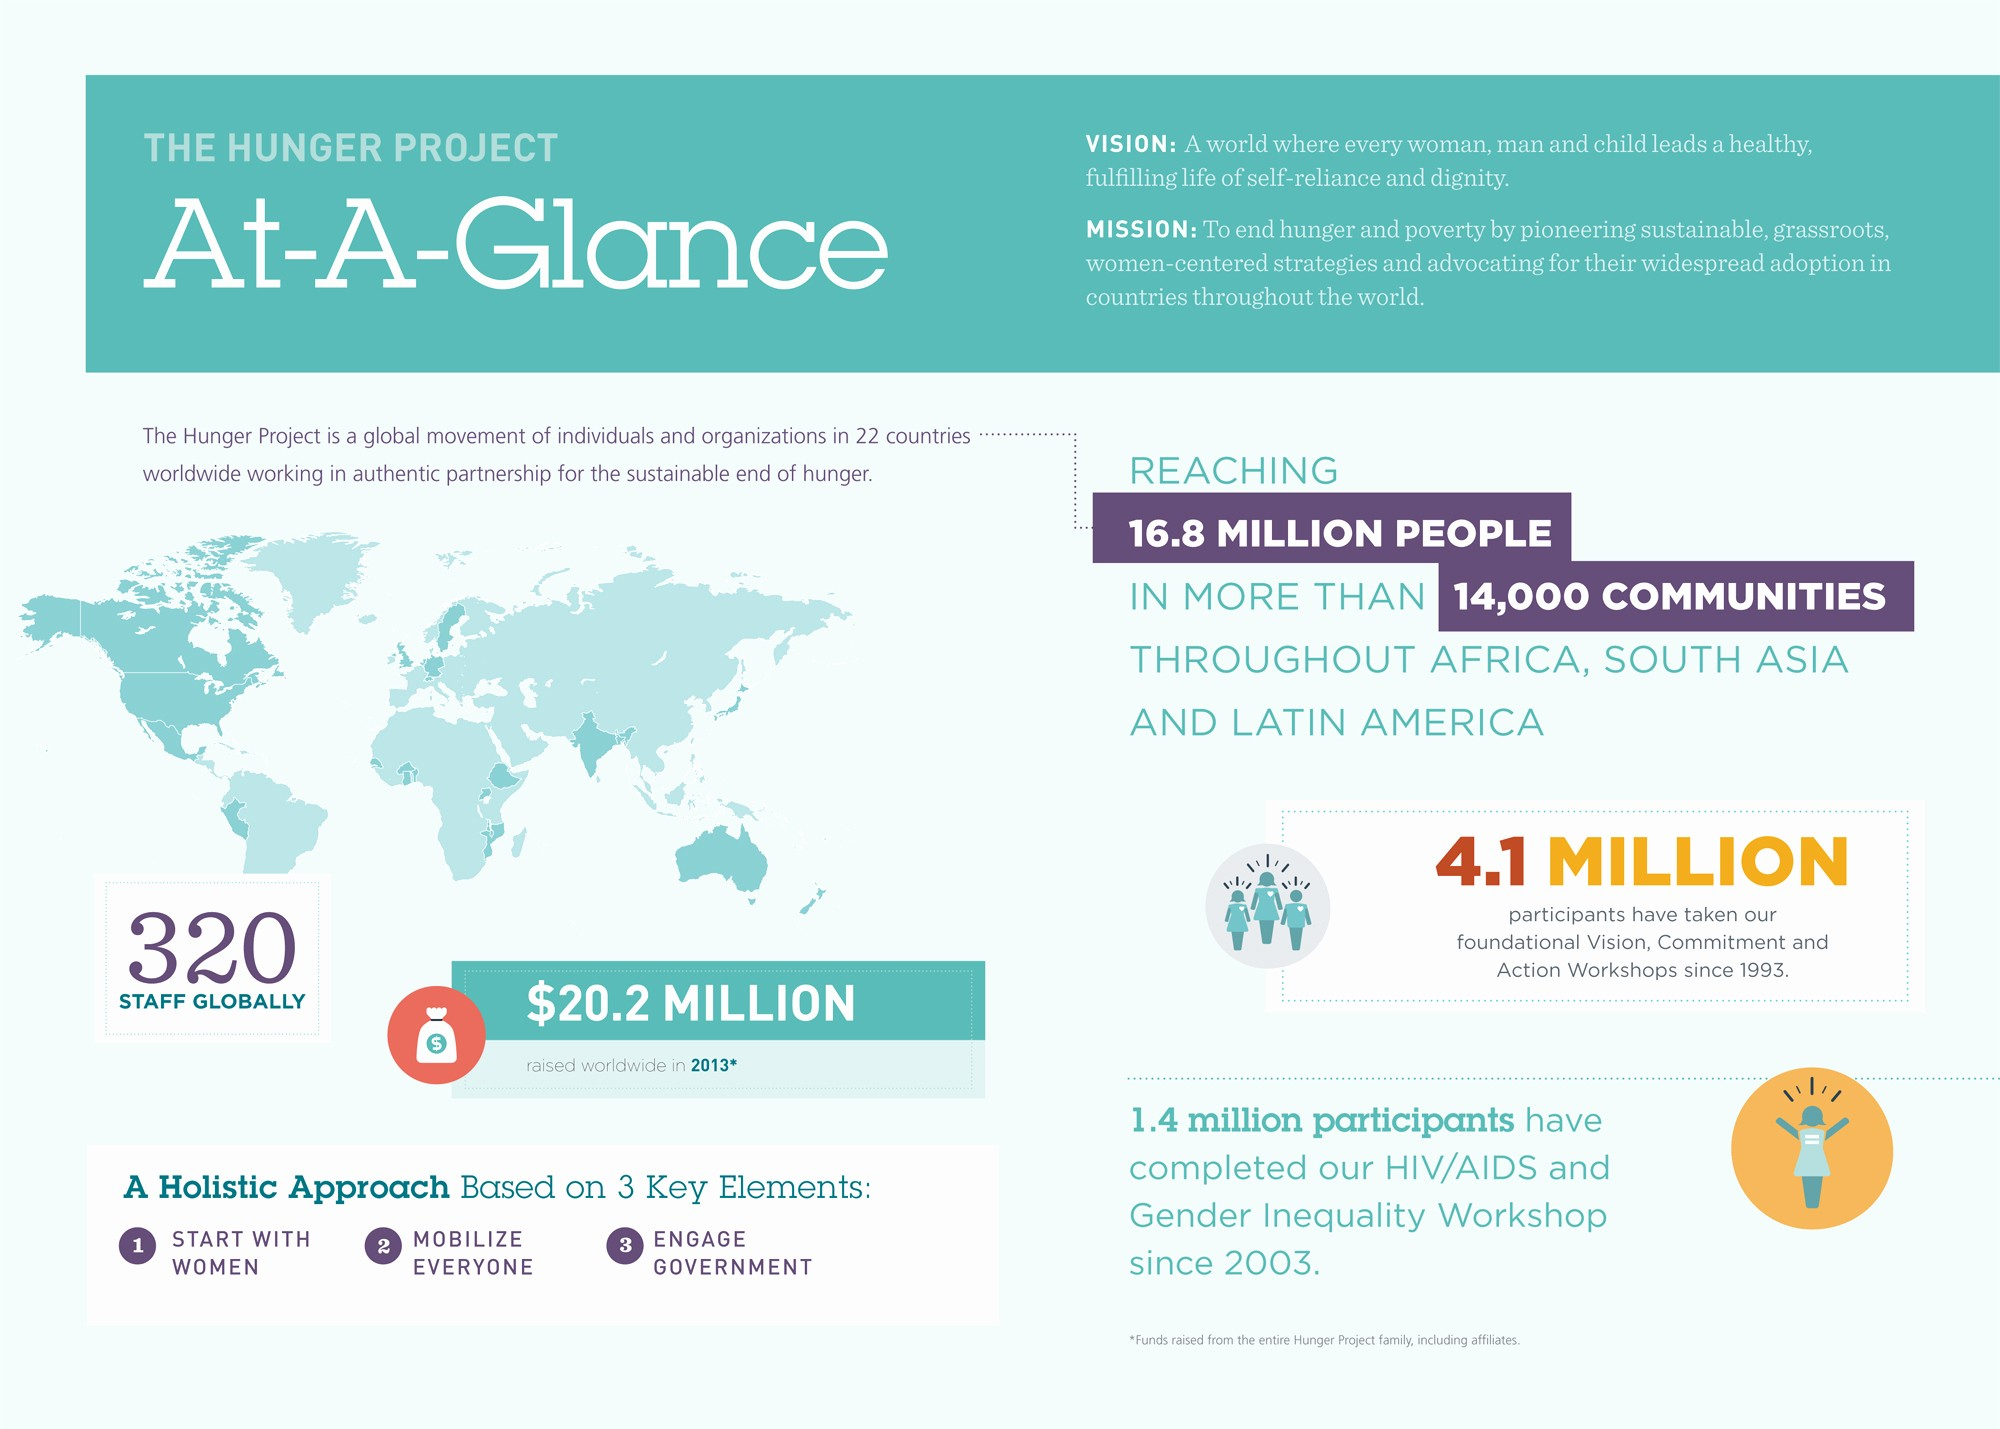 A Year at A Glance Inspirational Knowledge Center • the Hunger Project